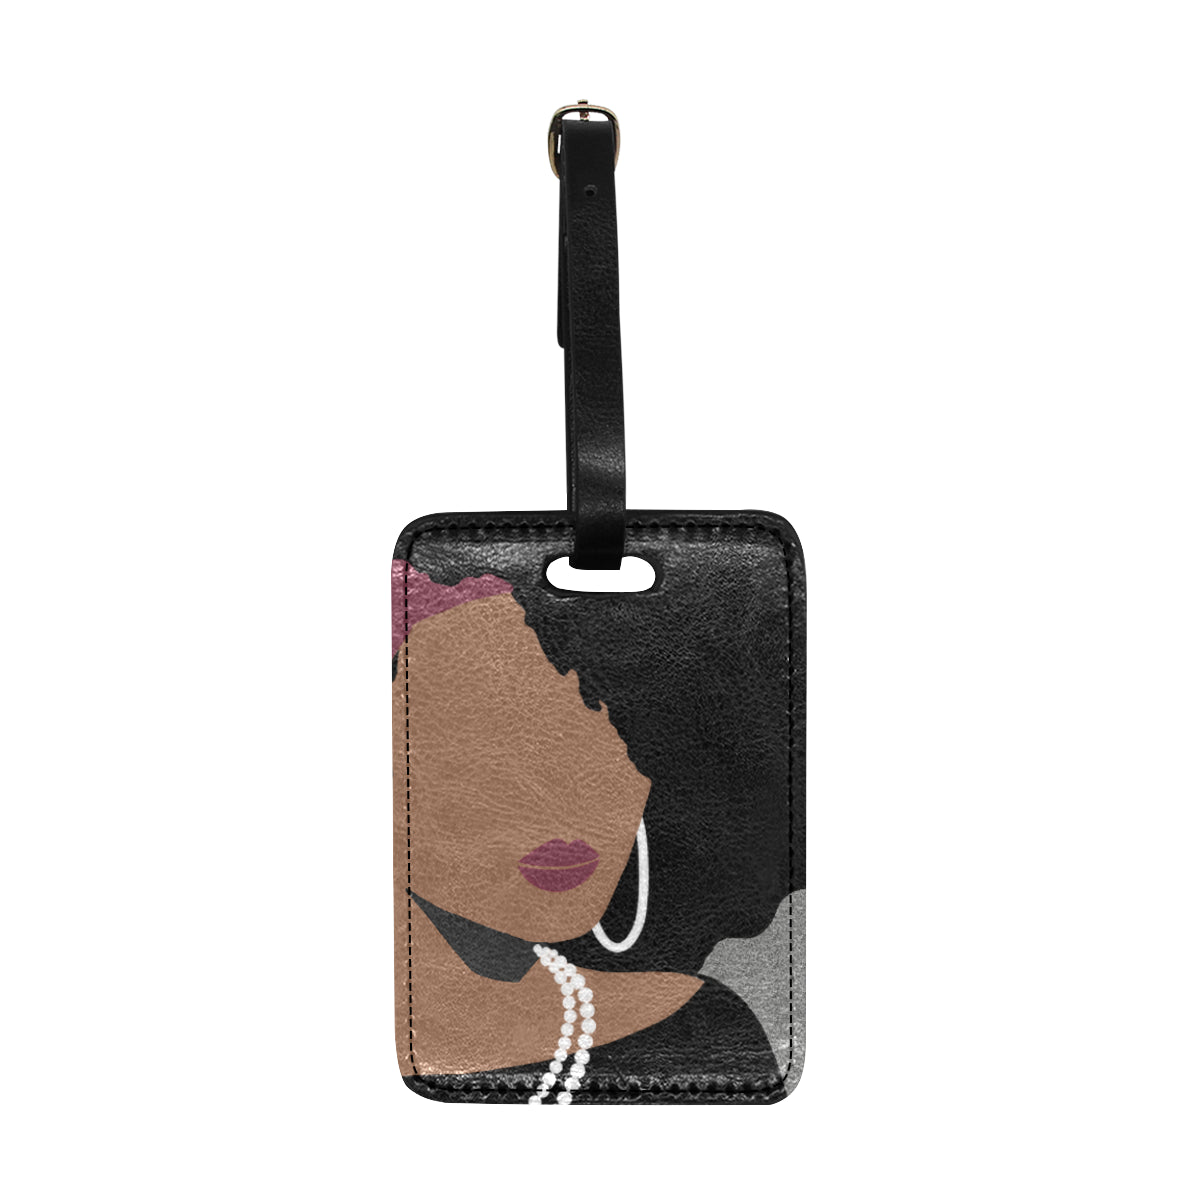 Bougie Kara 1910 Luggage Tag